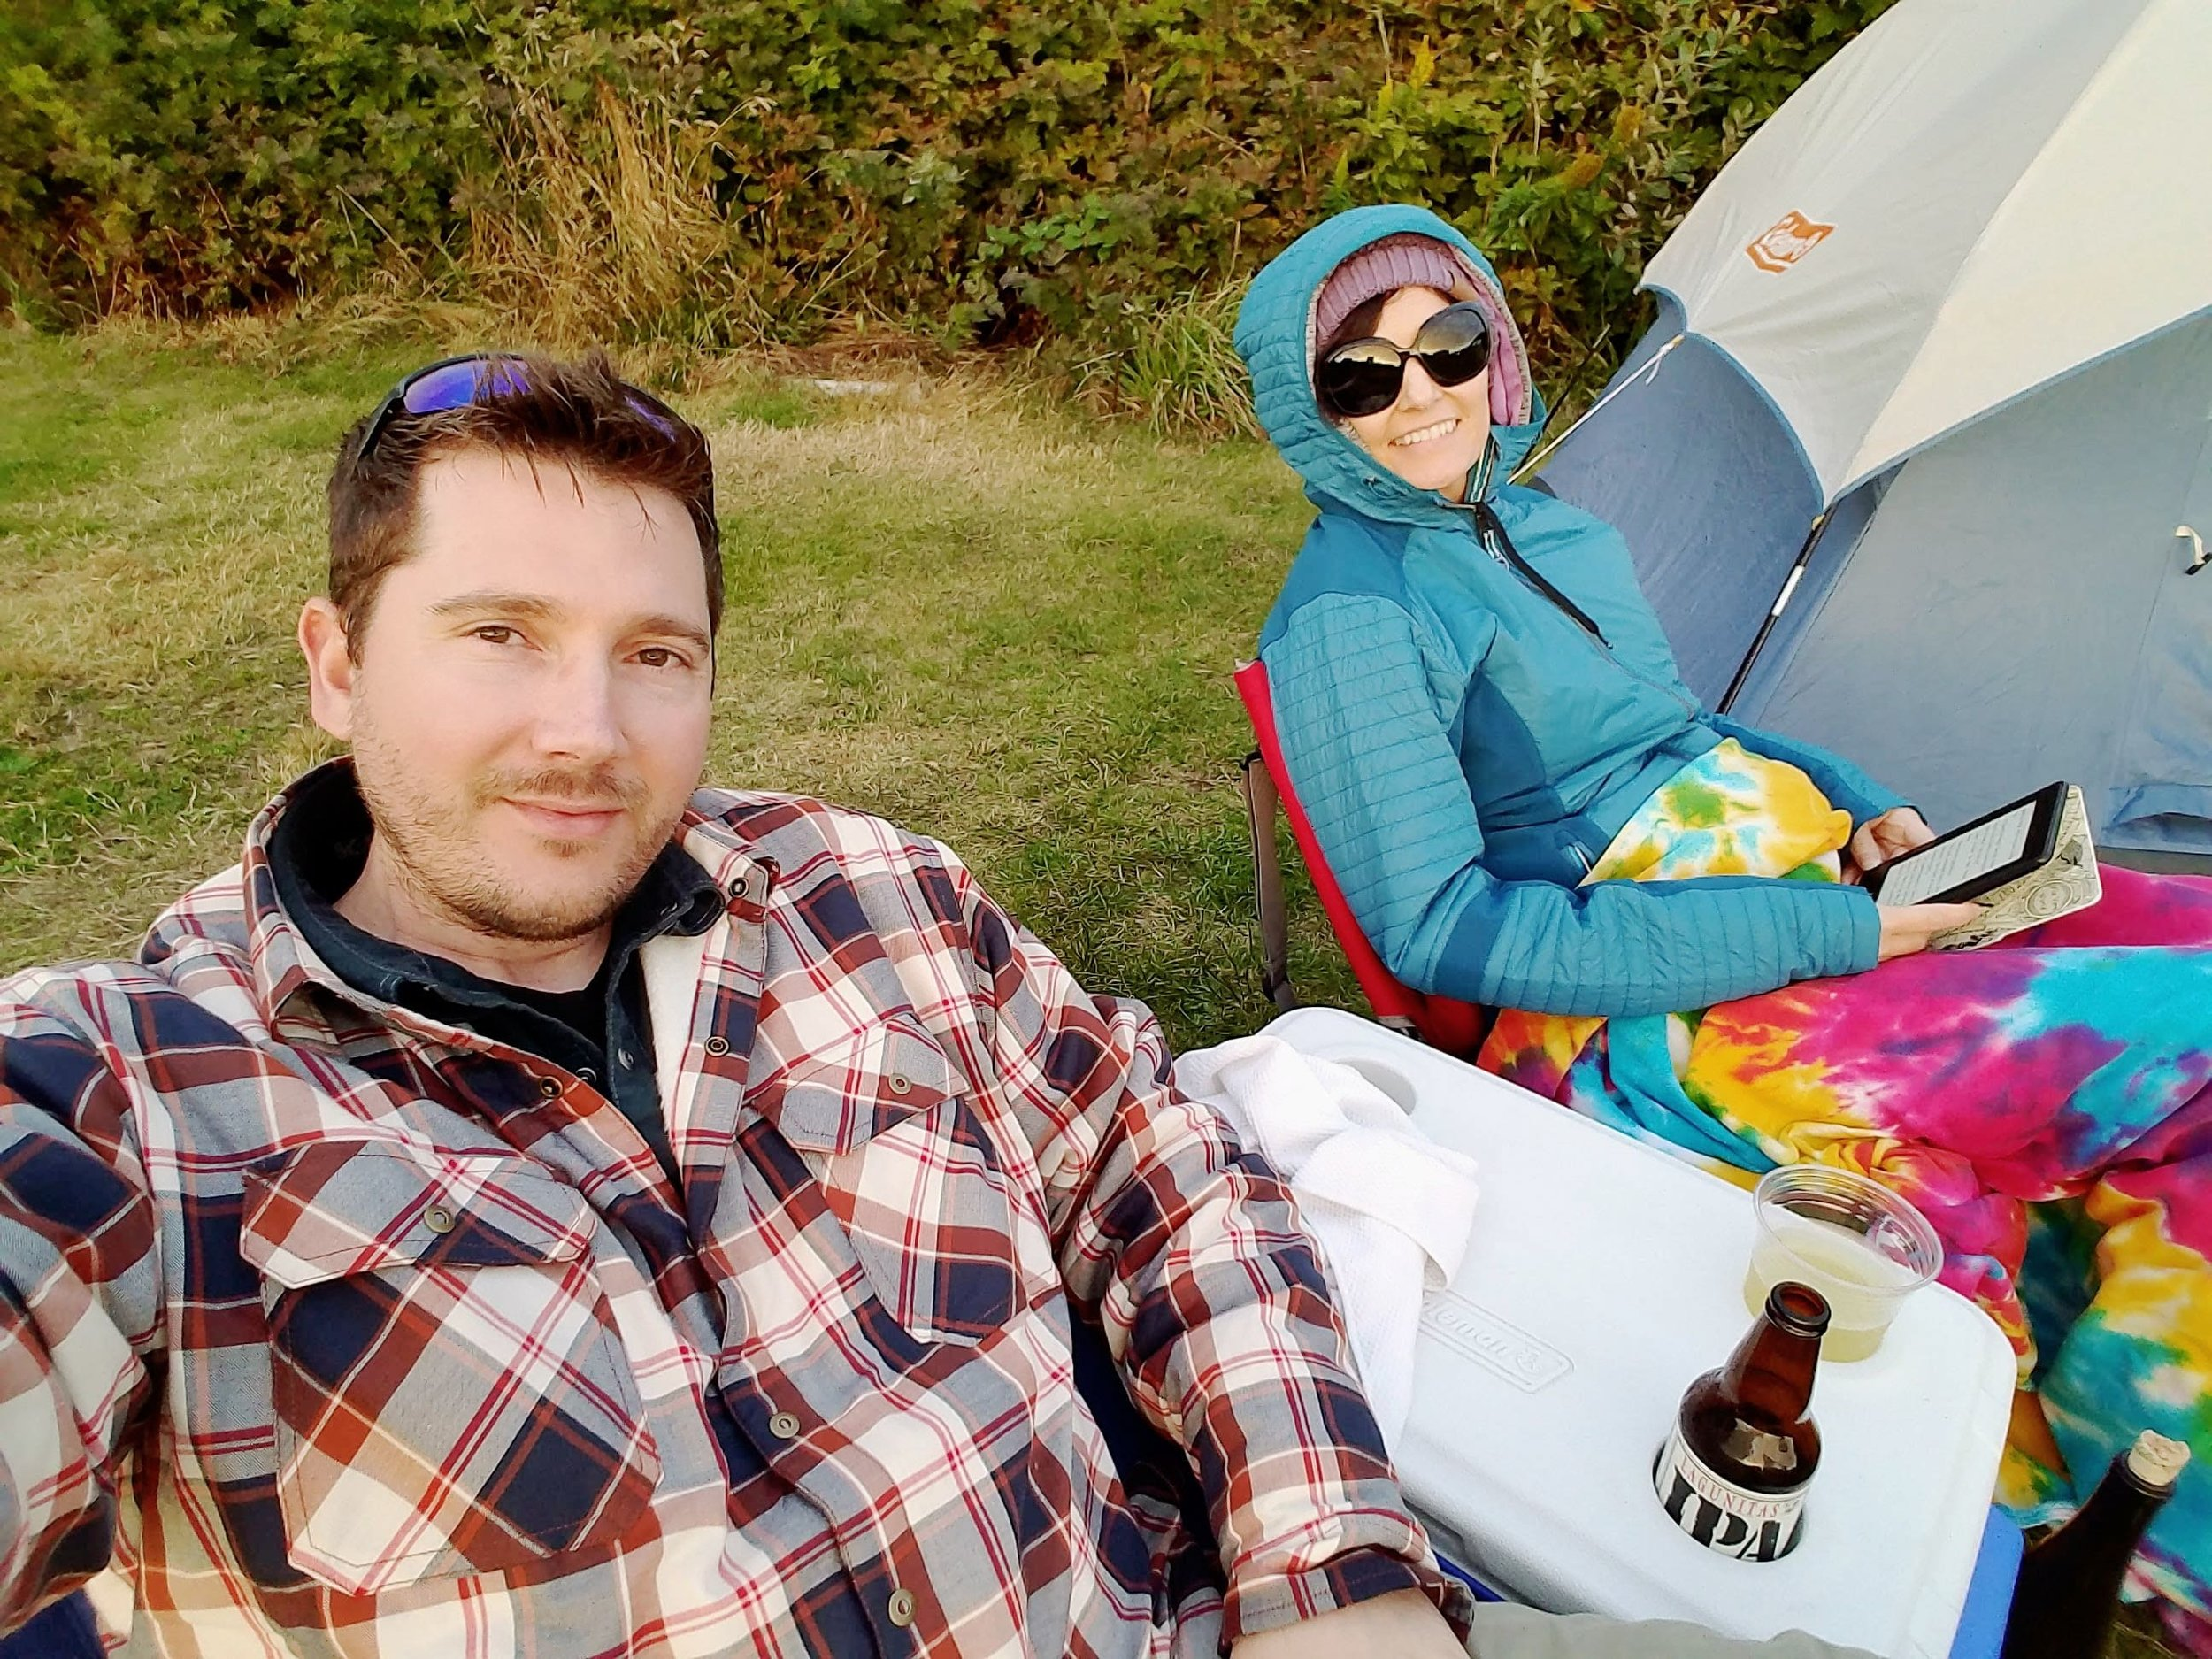 Camping at Pacific Beach State Park